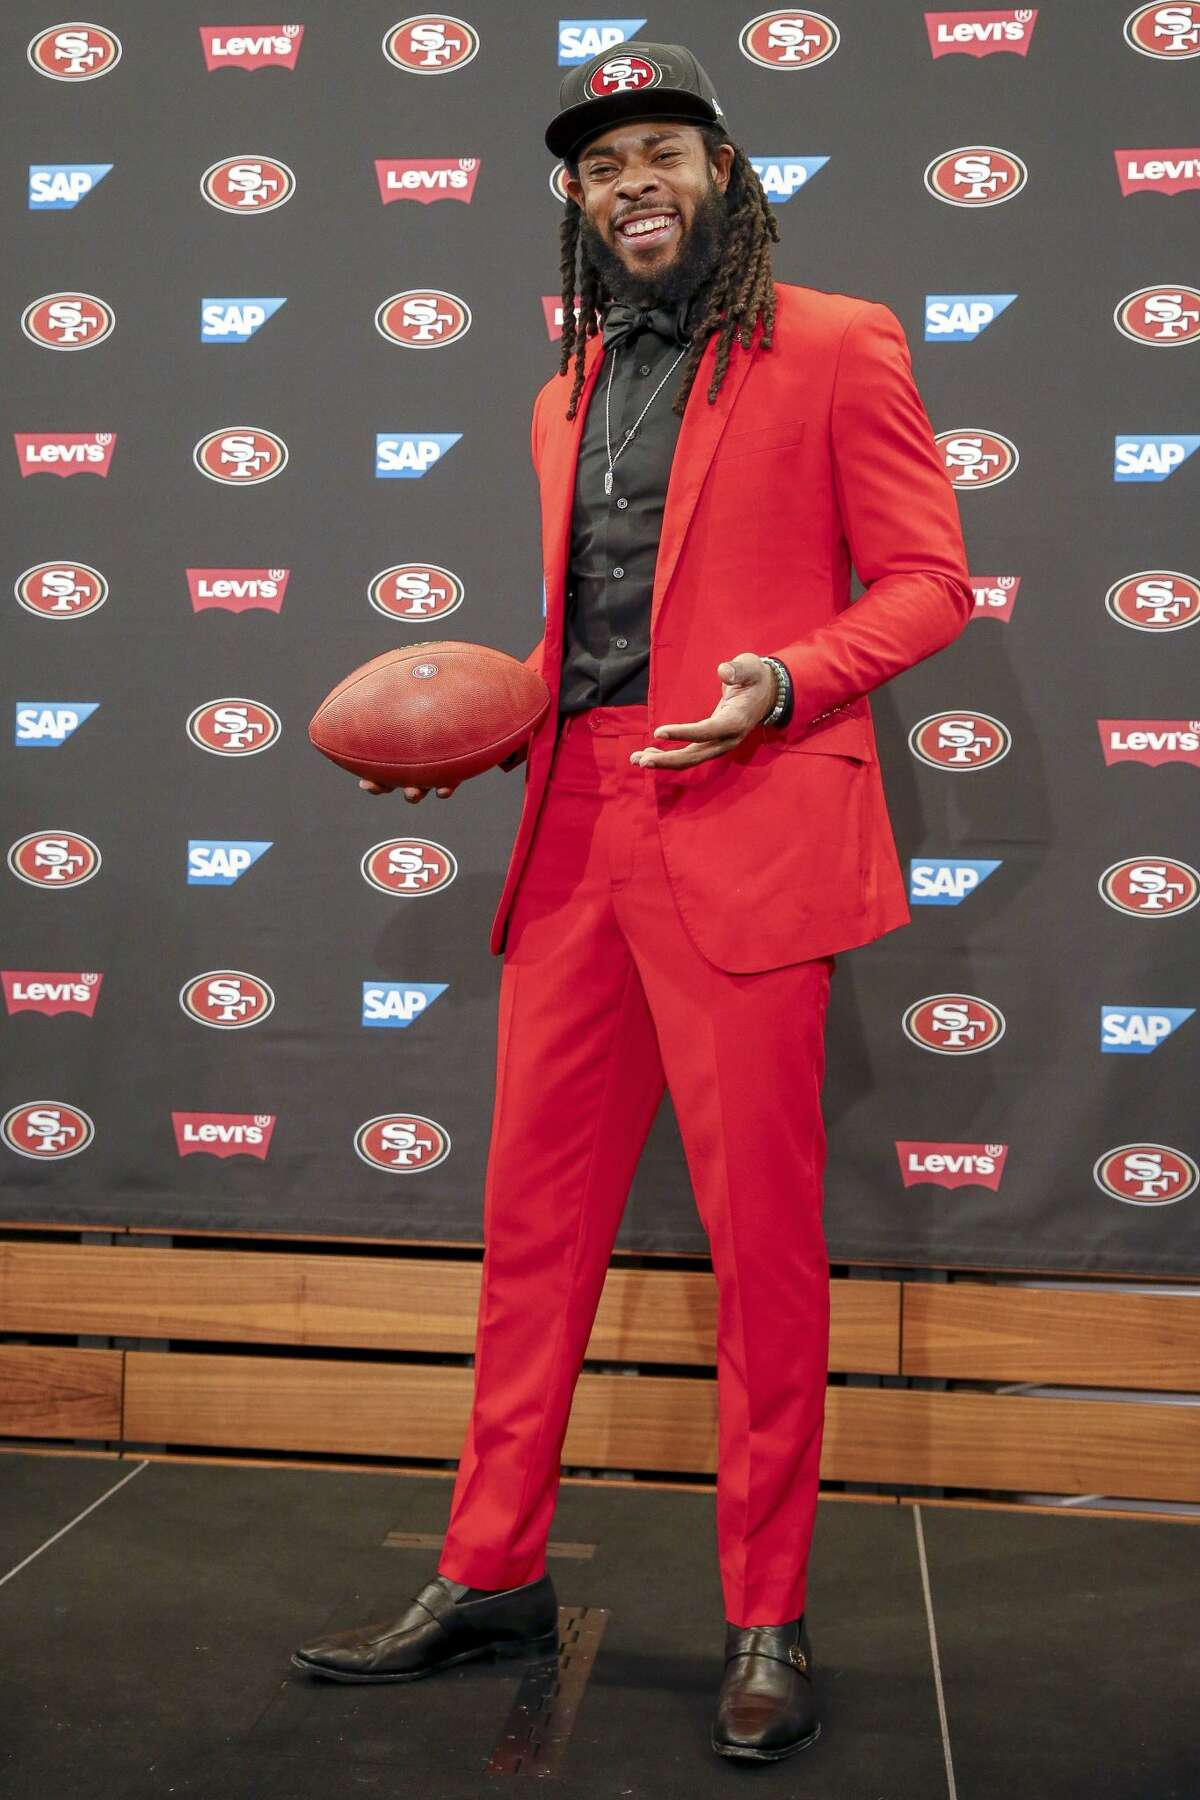 San Francisco 49ers cornerback Richard Sherman poses for a photo after answering questions during an NFL football news conference in Santa Clara, Calif., Tuesday, March 20, 2018. Sherman agreed to a three-year deal with the 49ers.